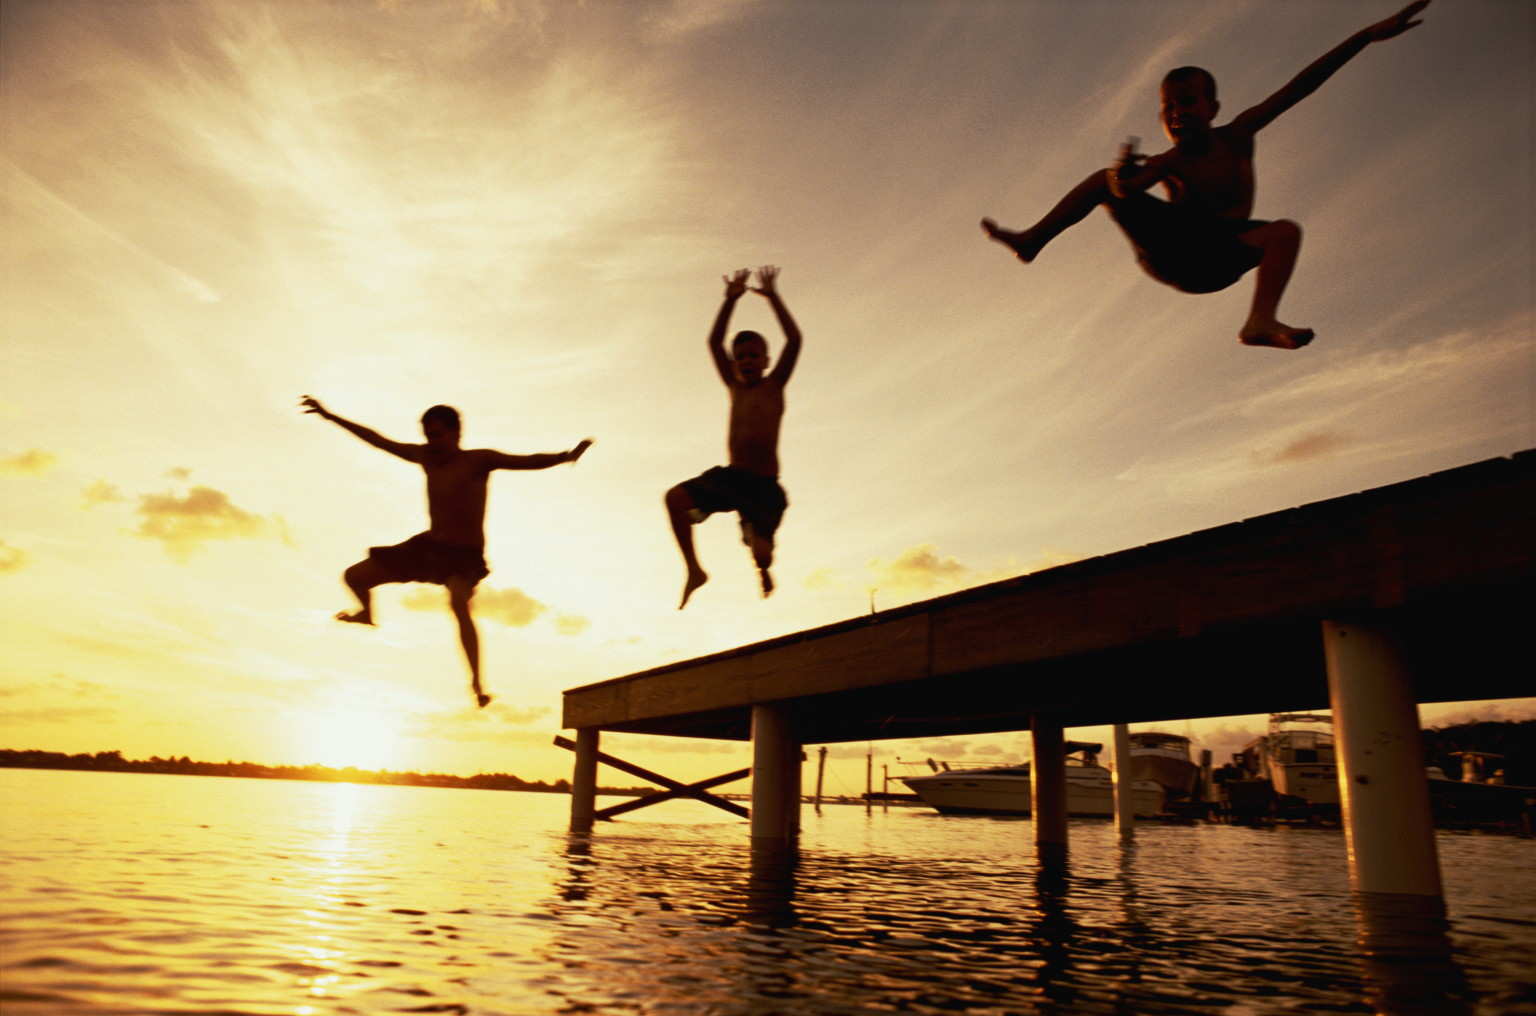 THREE CHILDREN JUMPING OFF DOCK IN SOUTH FLORIDA